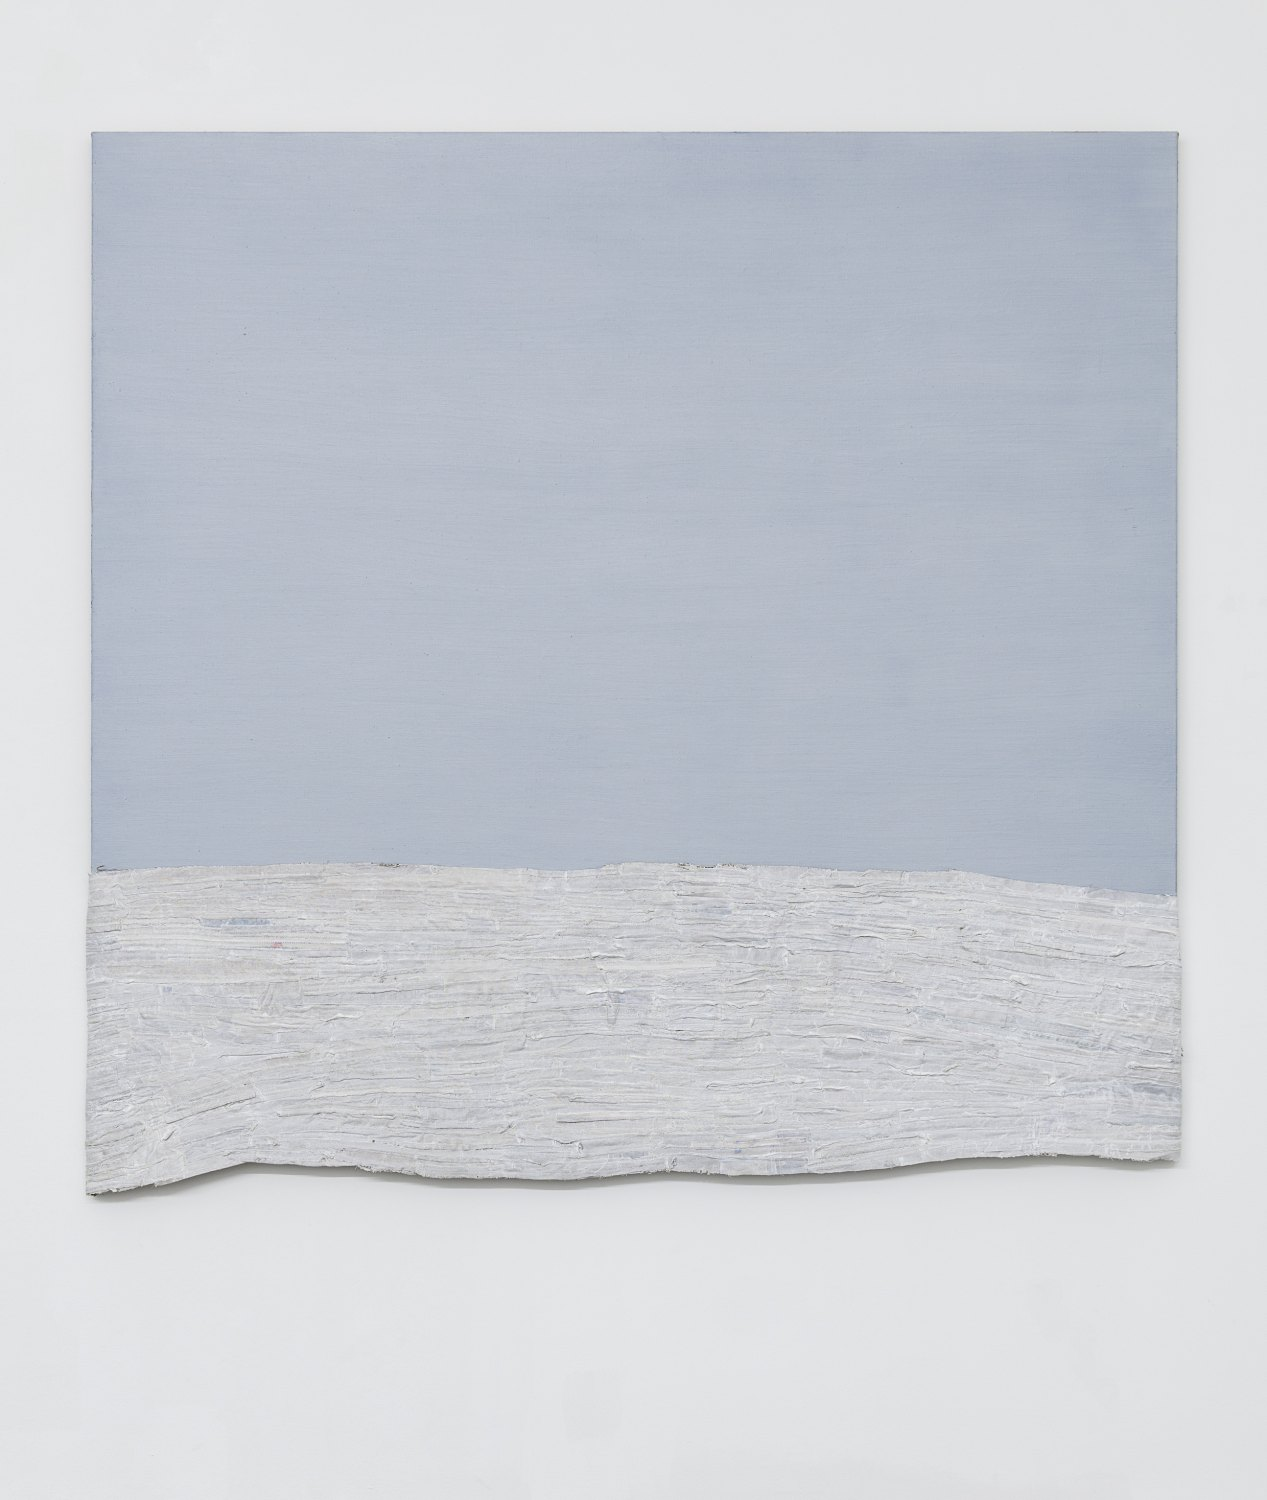 Sergej Jensen  Marine Layer, 2017 Acrylic and oil on sewn linen, 175 x 188 x 3 cm